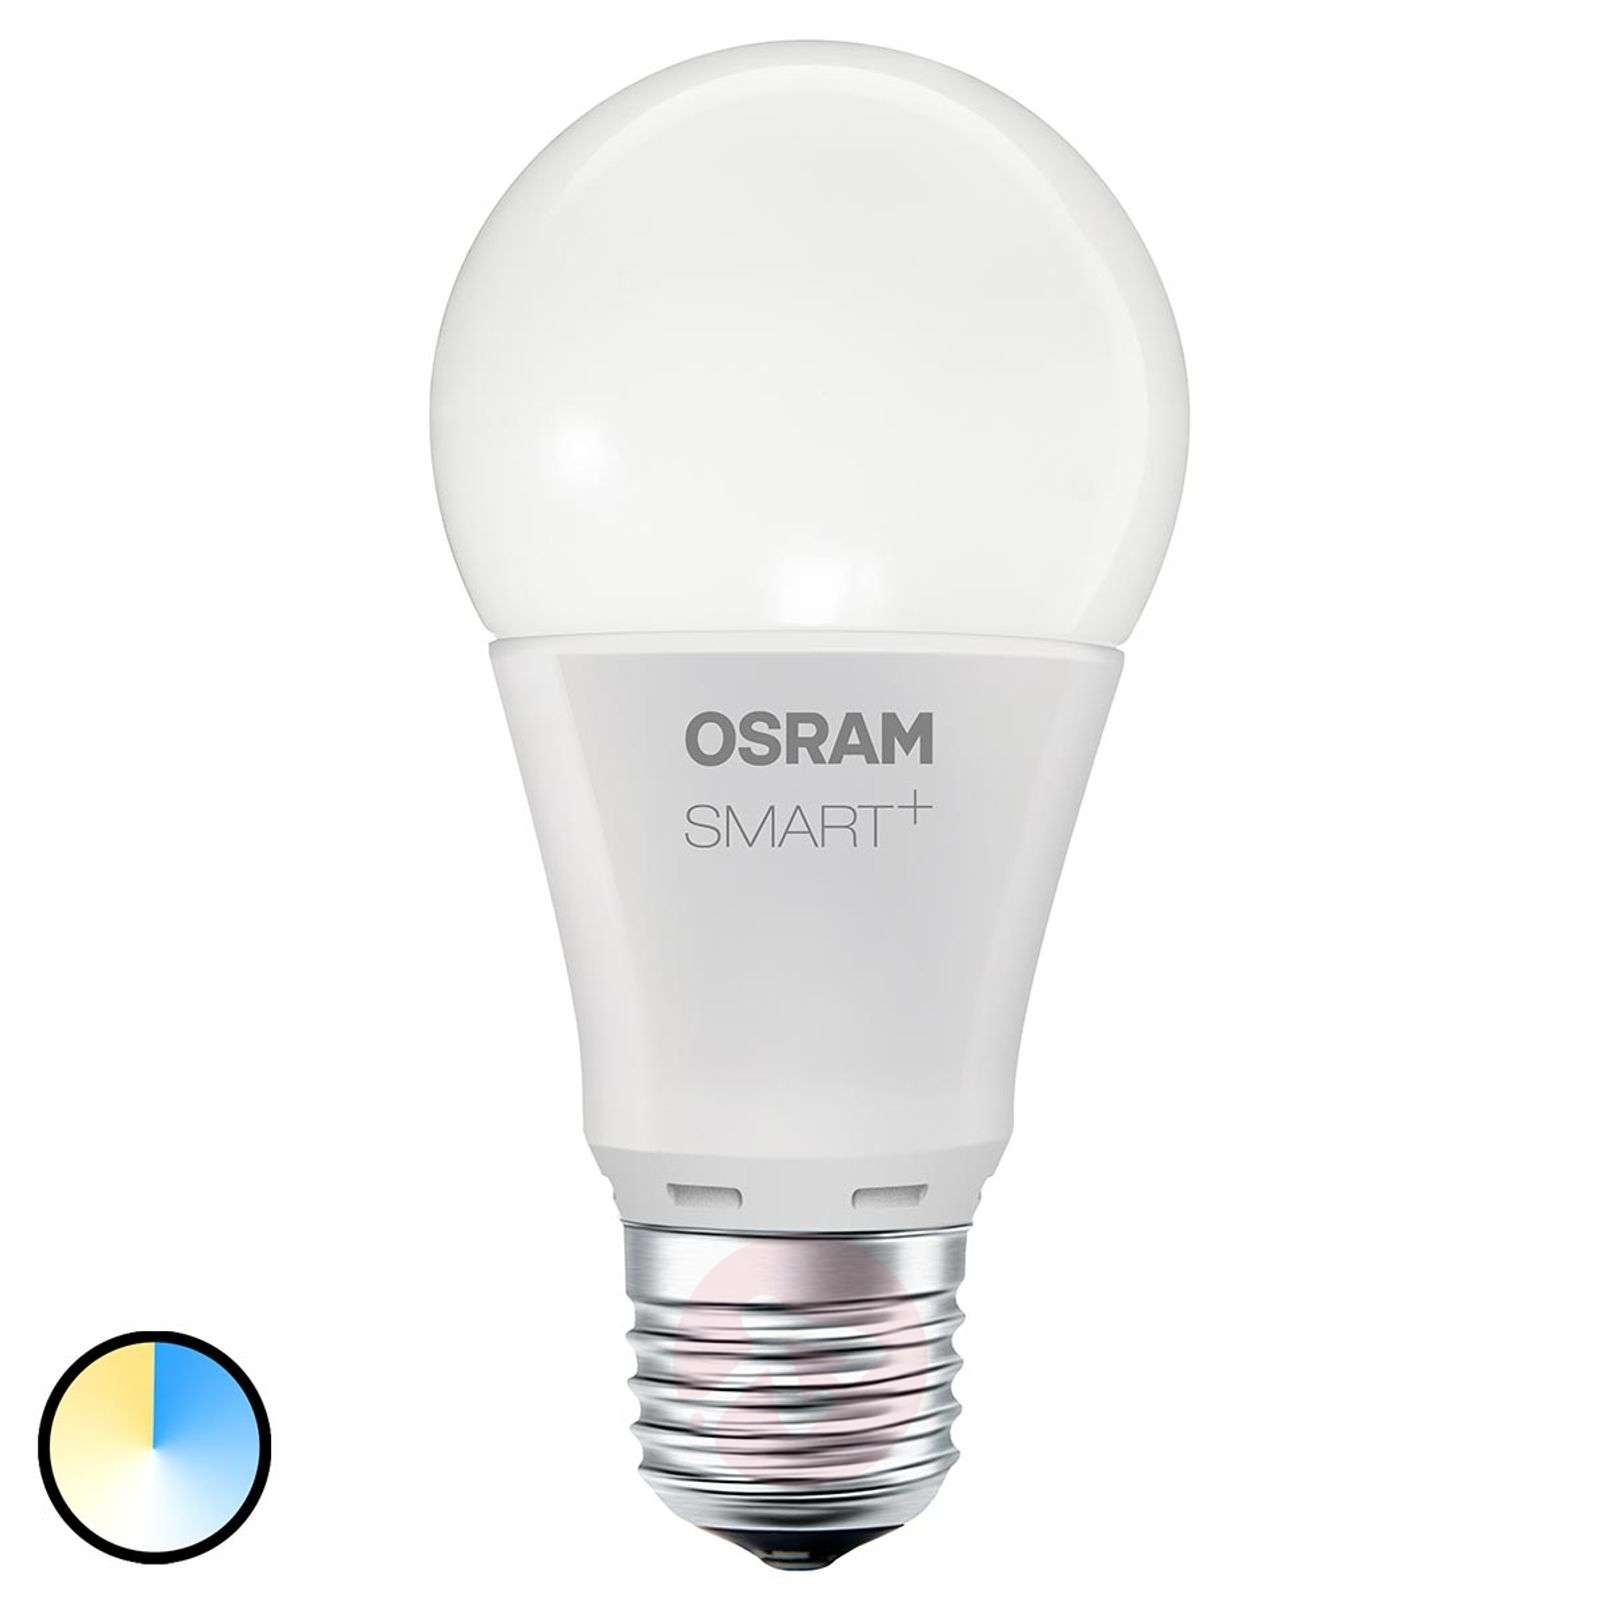 SMART+ LED E27 8,5W,TuneableWhite, 800lm, dimmable-7262122-01